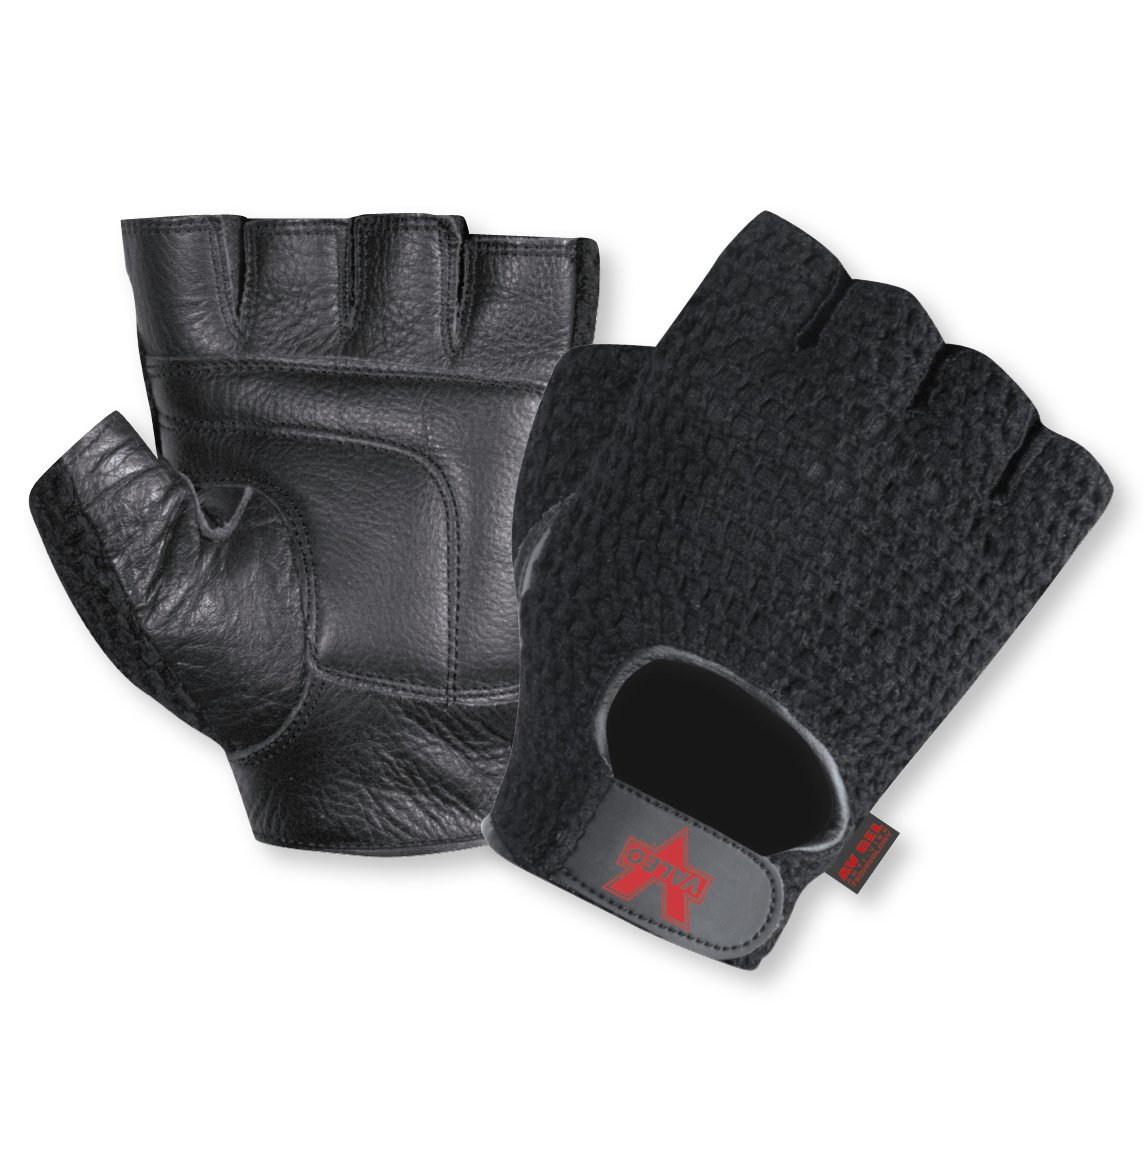 Valeo Industrial V450 Mesh Fingerless Anti-Vibe Gloves, VI4880, Pair, Black, Medium